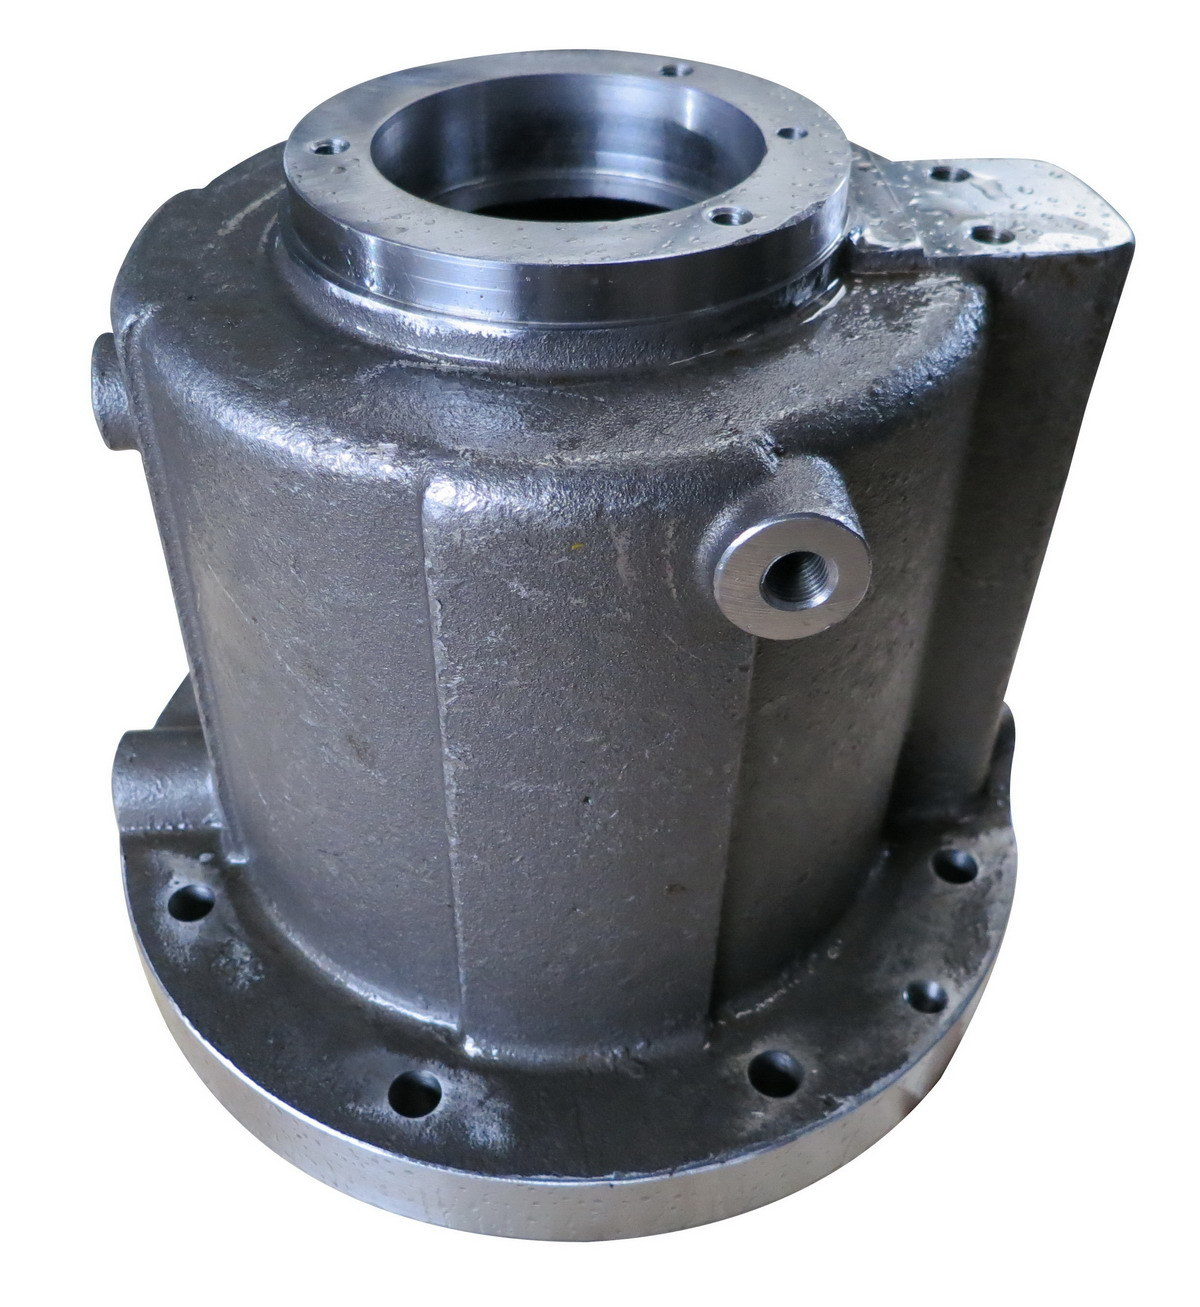 Precision Casting+Cast Steel-a World Class Manufacturer (24 years experience, 20, 000 tons capacity, TS16949)